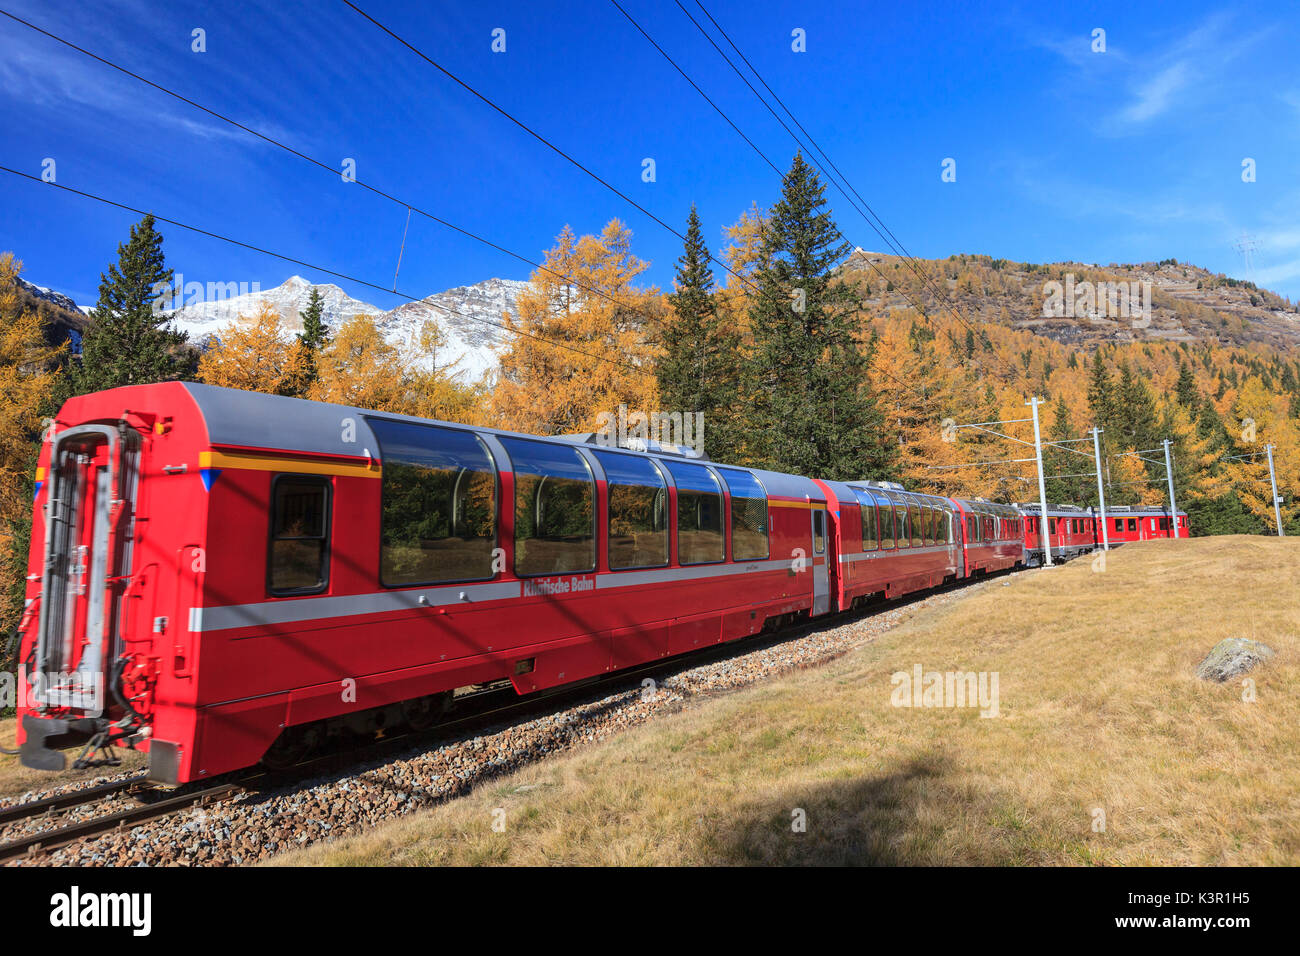 The red train of Bernina in autumn going towards Alp Grum, Val Poschiavo Switzerland Europe - Stock Image